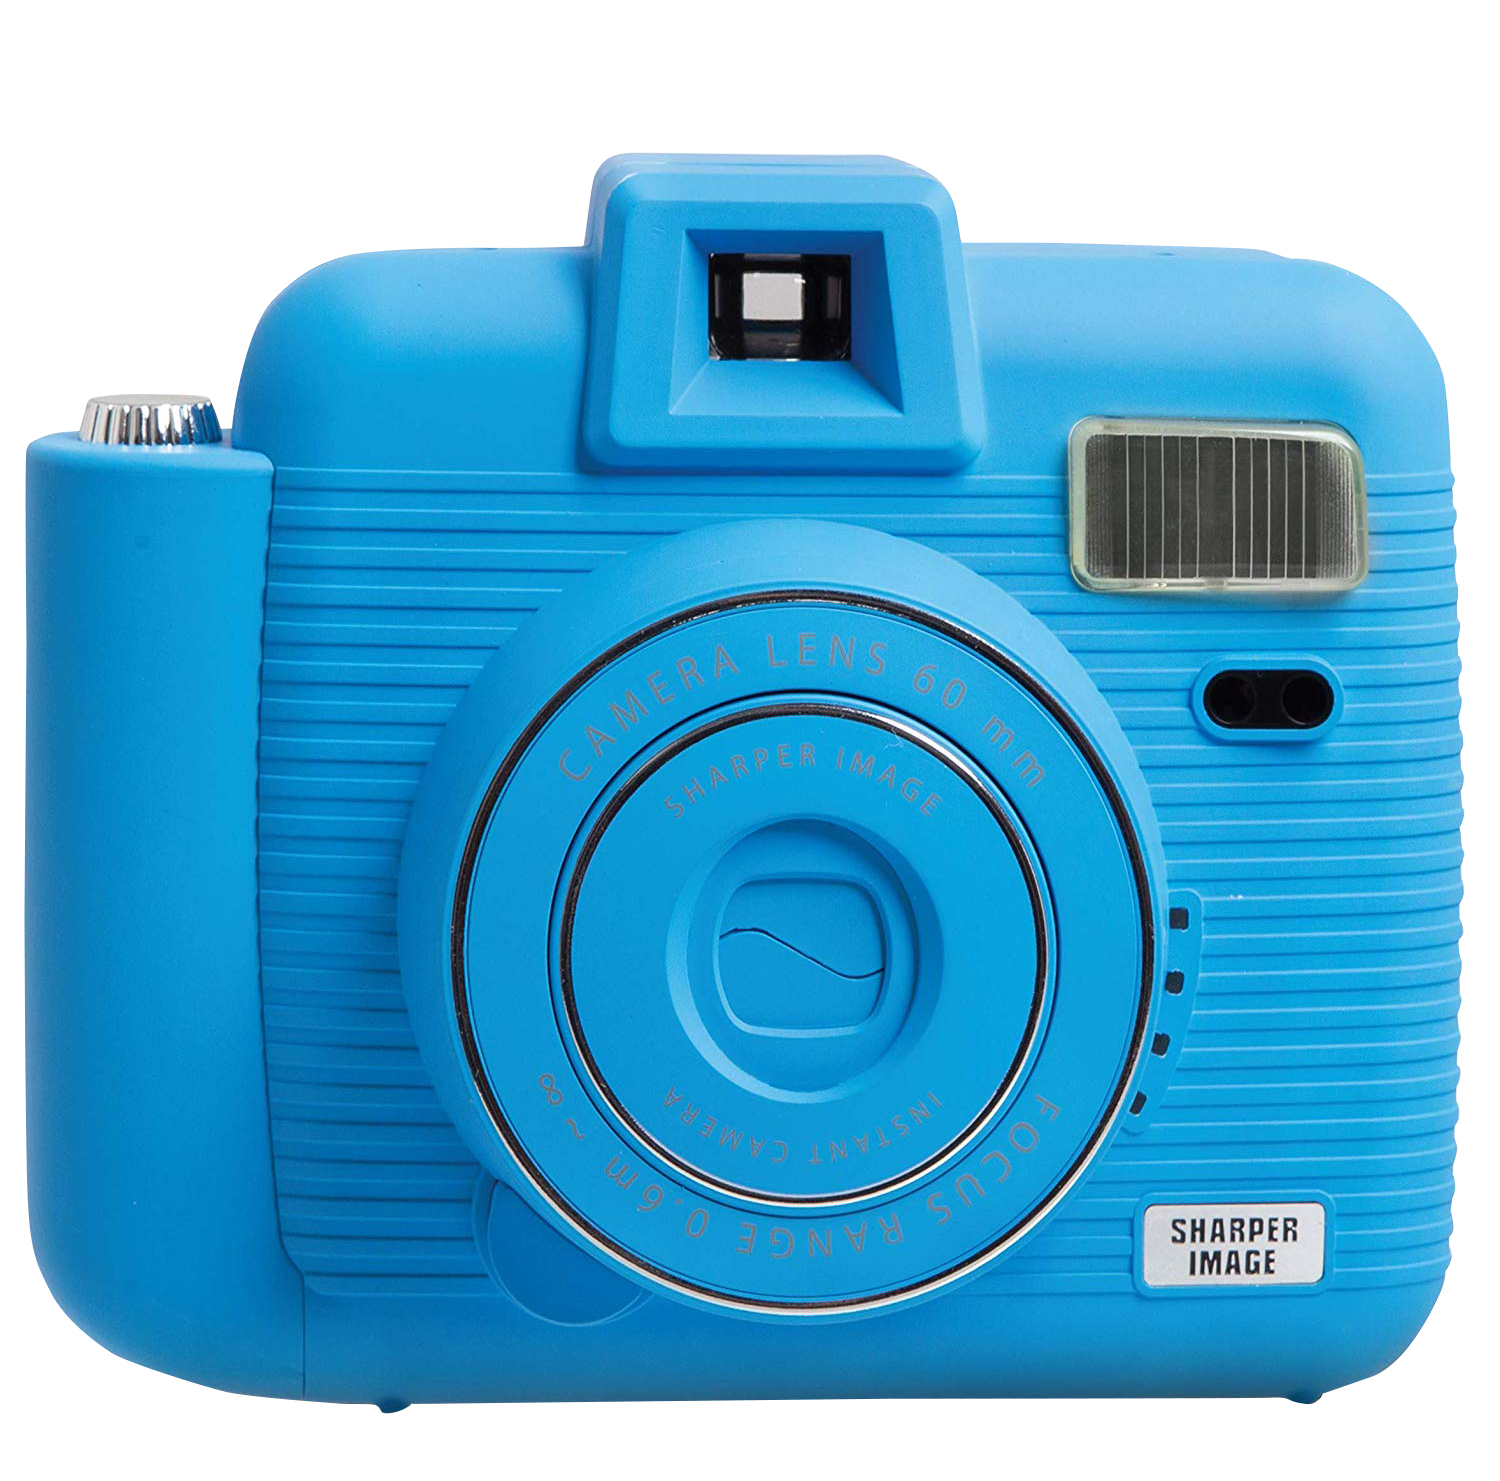 Sharper Image Instant Camera Kit Just $19.99 (Reg $44)